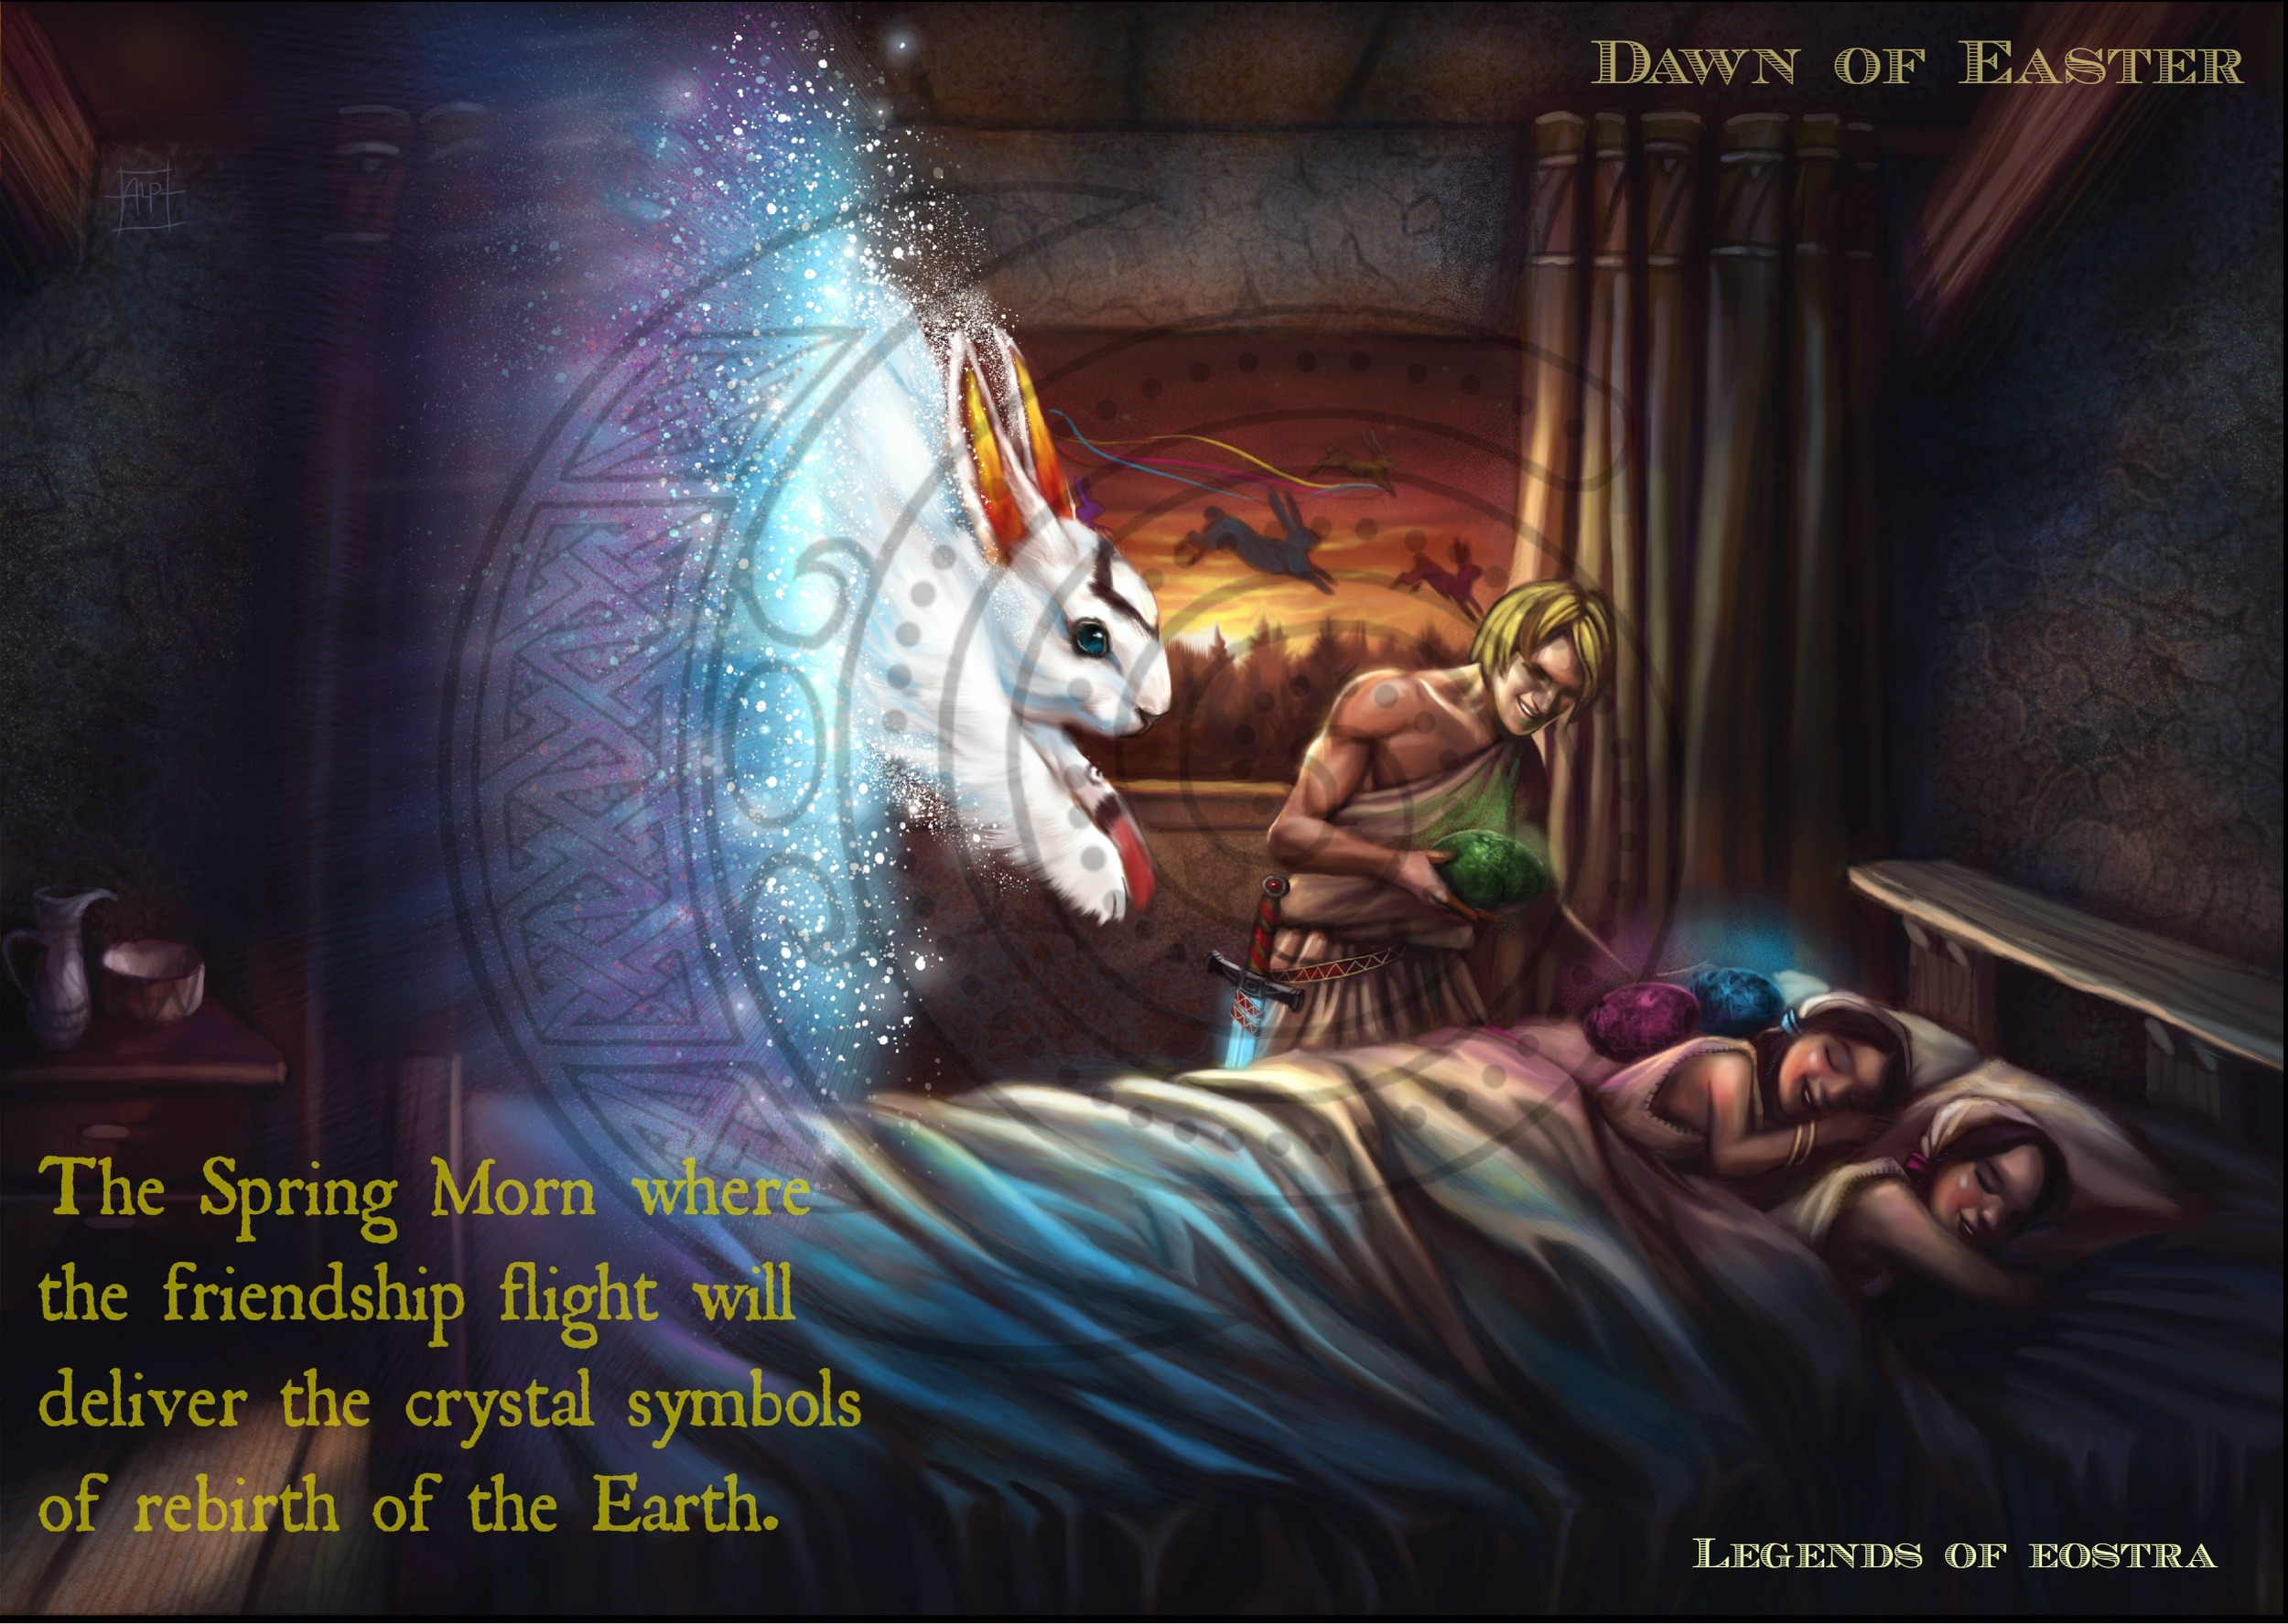 The Dawn of Easter